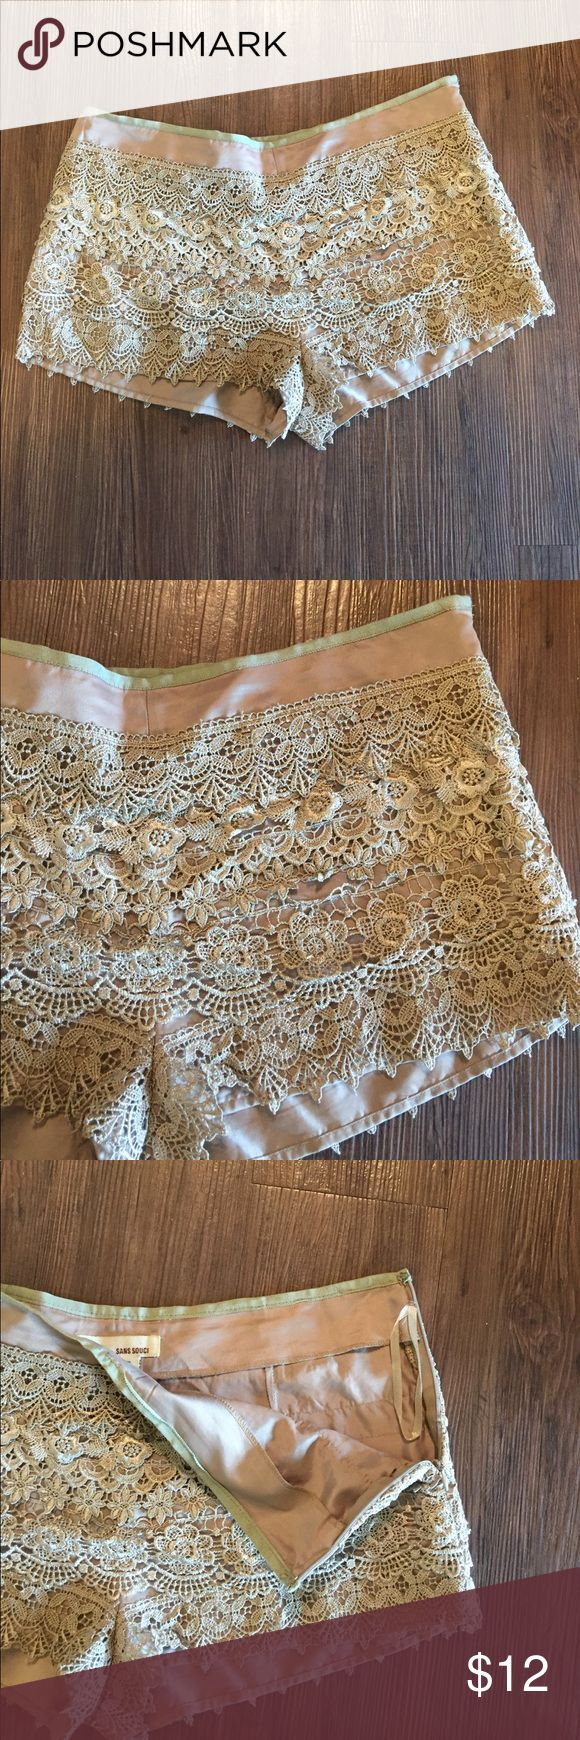 "Sans Souci Large Lace Light Tan Shorts Sand Souci large lace light tan shorts. They are very cute and versatile with any summer wardrobe.  It has a left side zipper that is 5"" long, a 34"" waist, and is 20"" down from the waist. These do not have any stretch to them. No defects seen and from a smoke free home. Sans Souci Shorts"